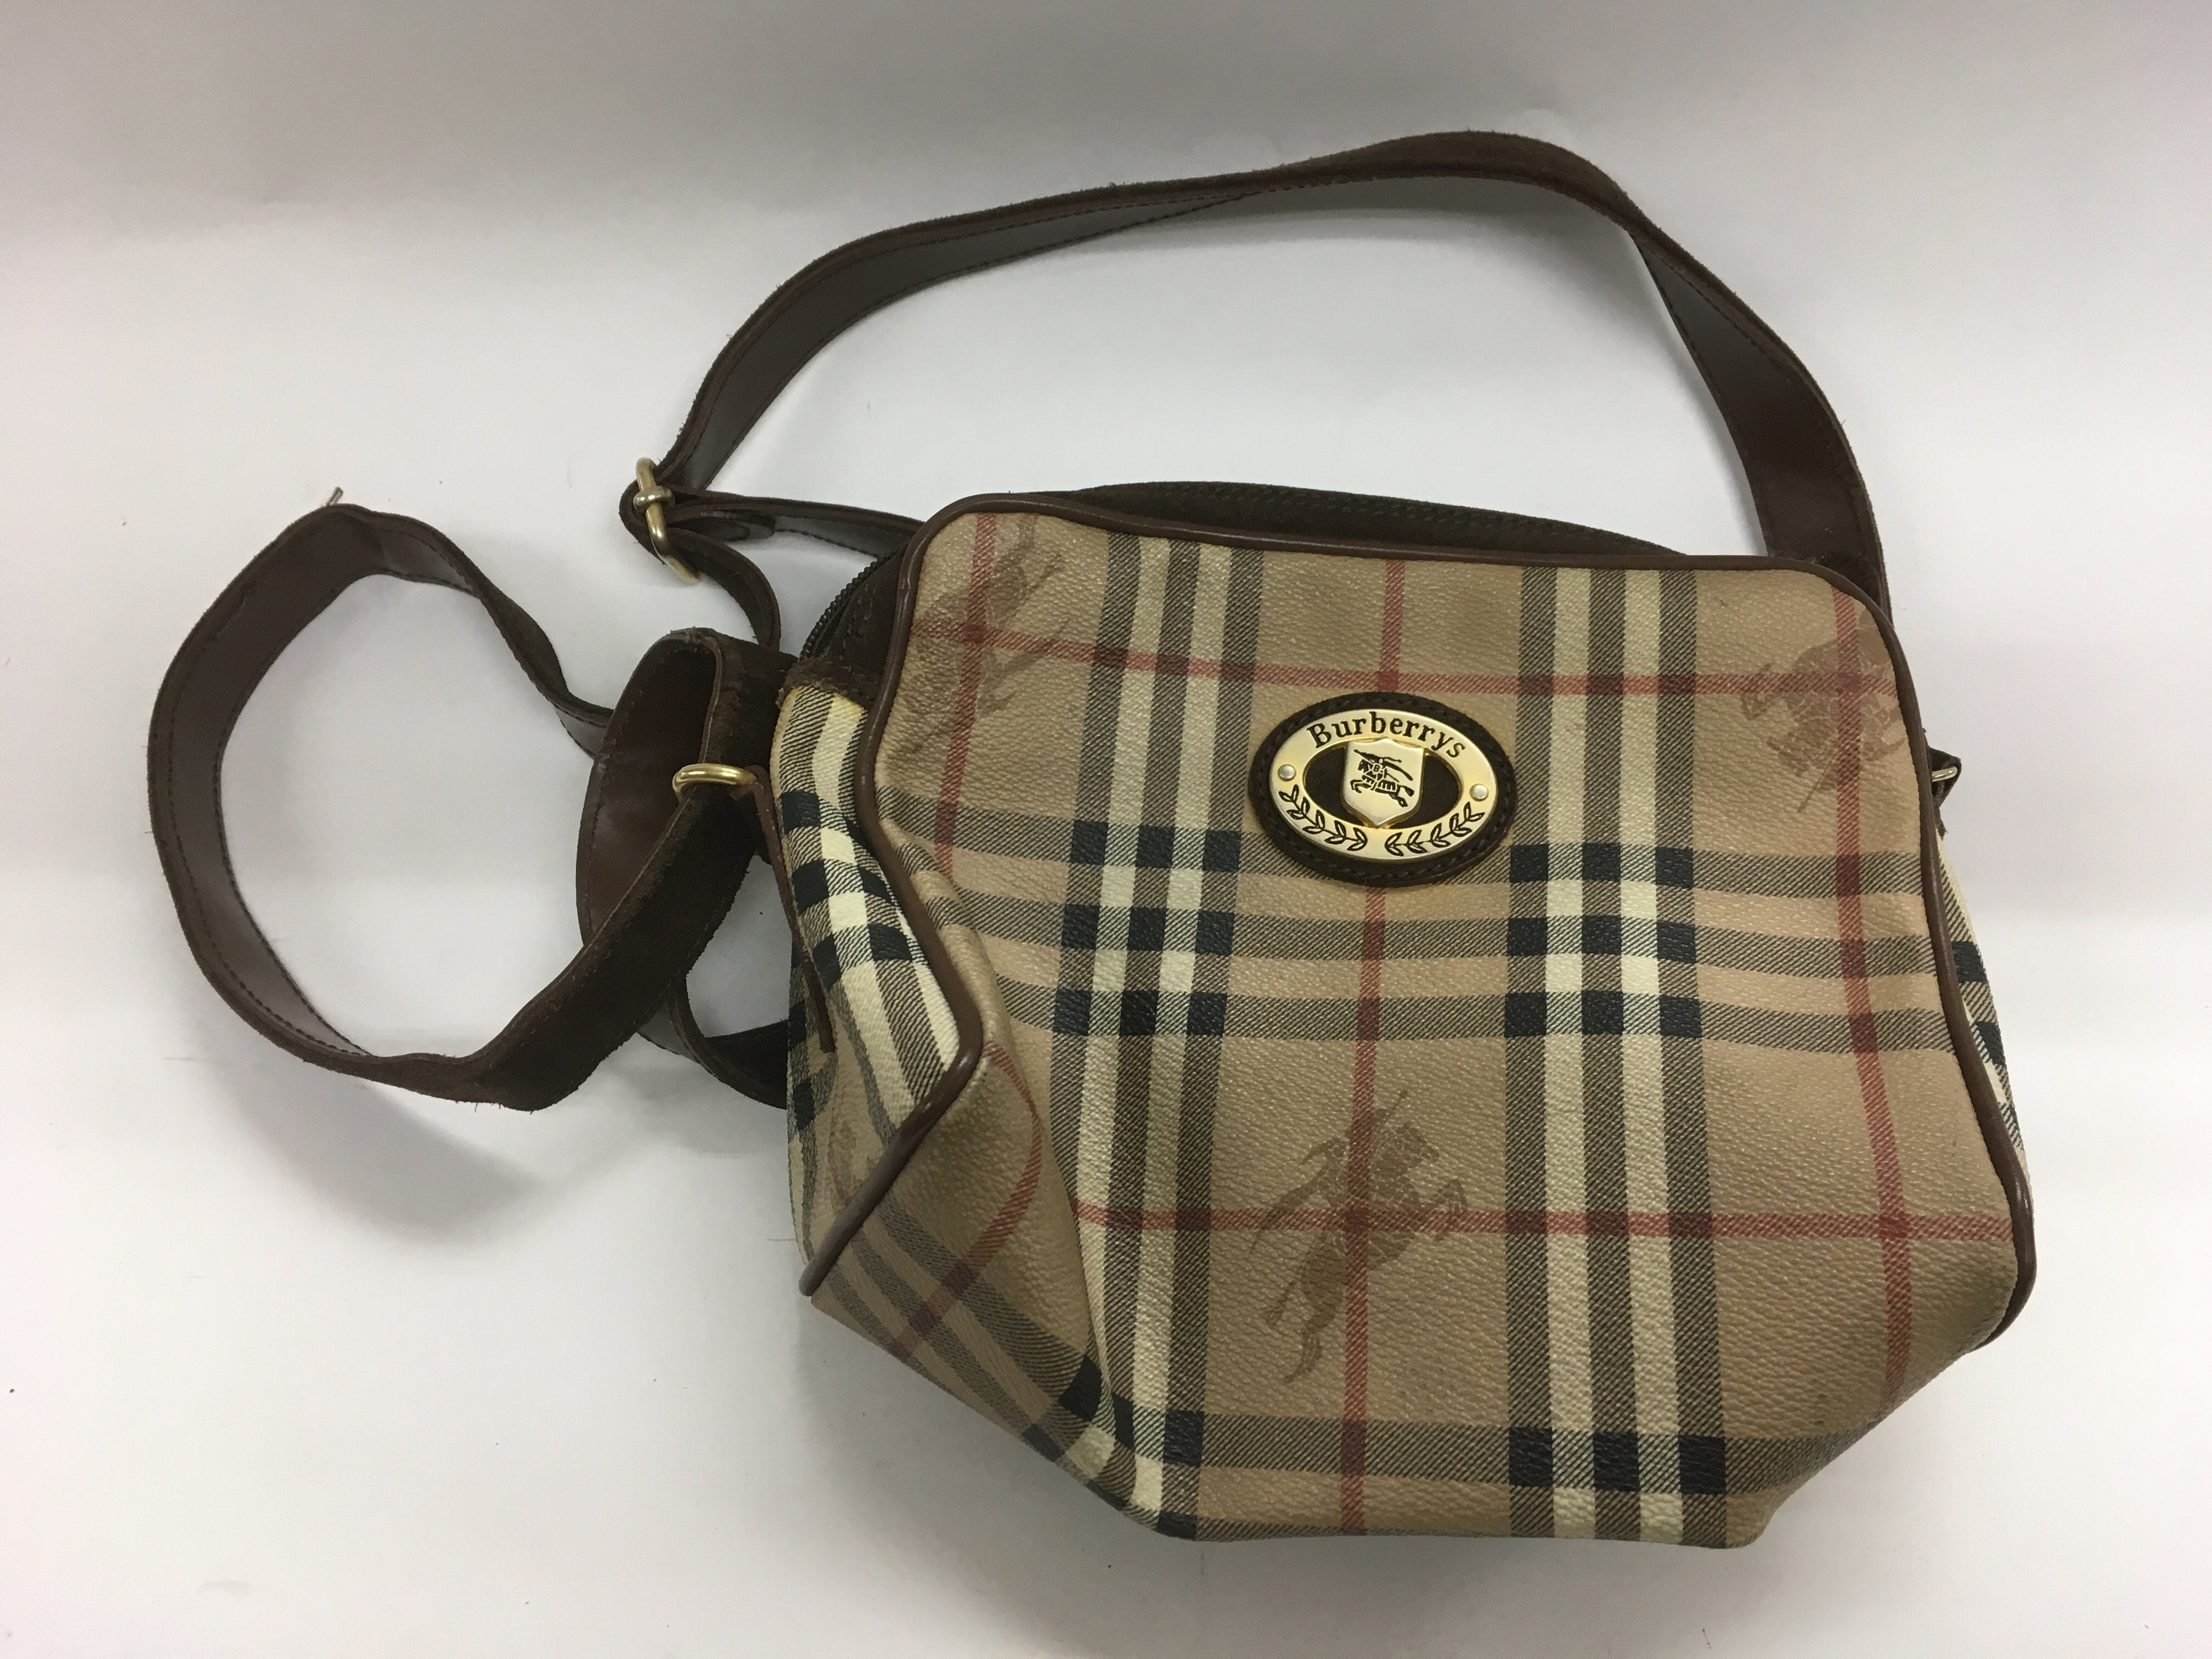 Lot 1785 - A Burberry style bag.